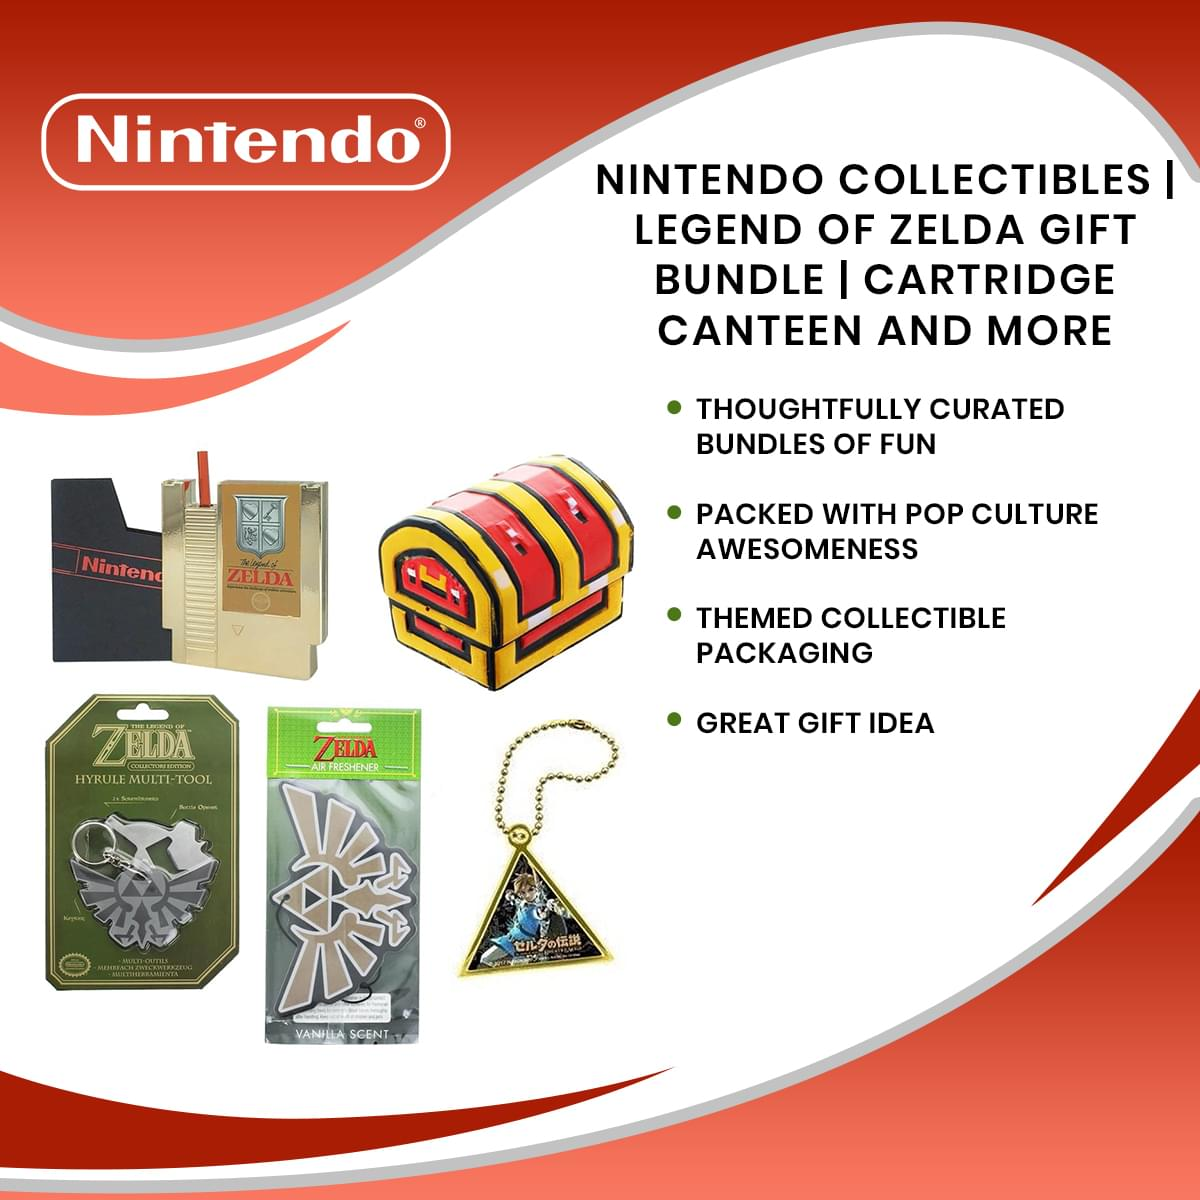 Nintendo Collectibles | Legend of Zelda Gift Bundle | Cartridge Canteen and More